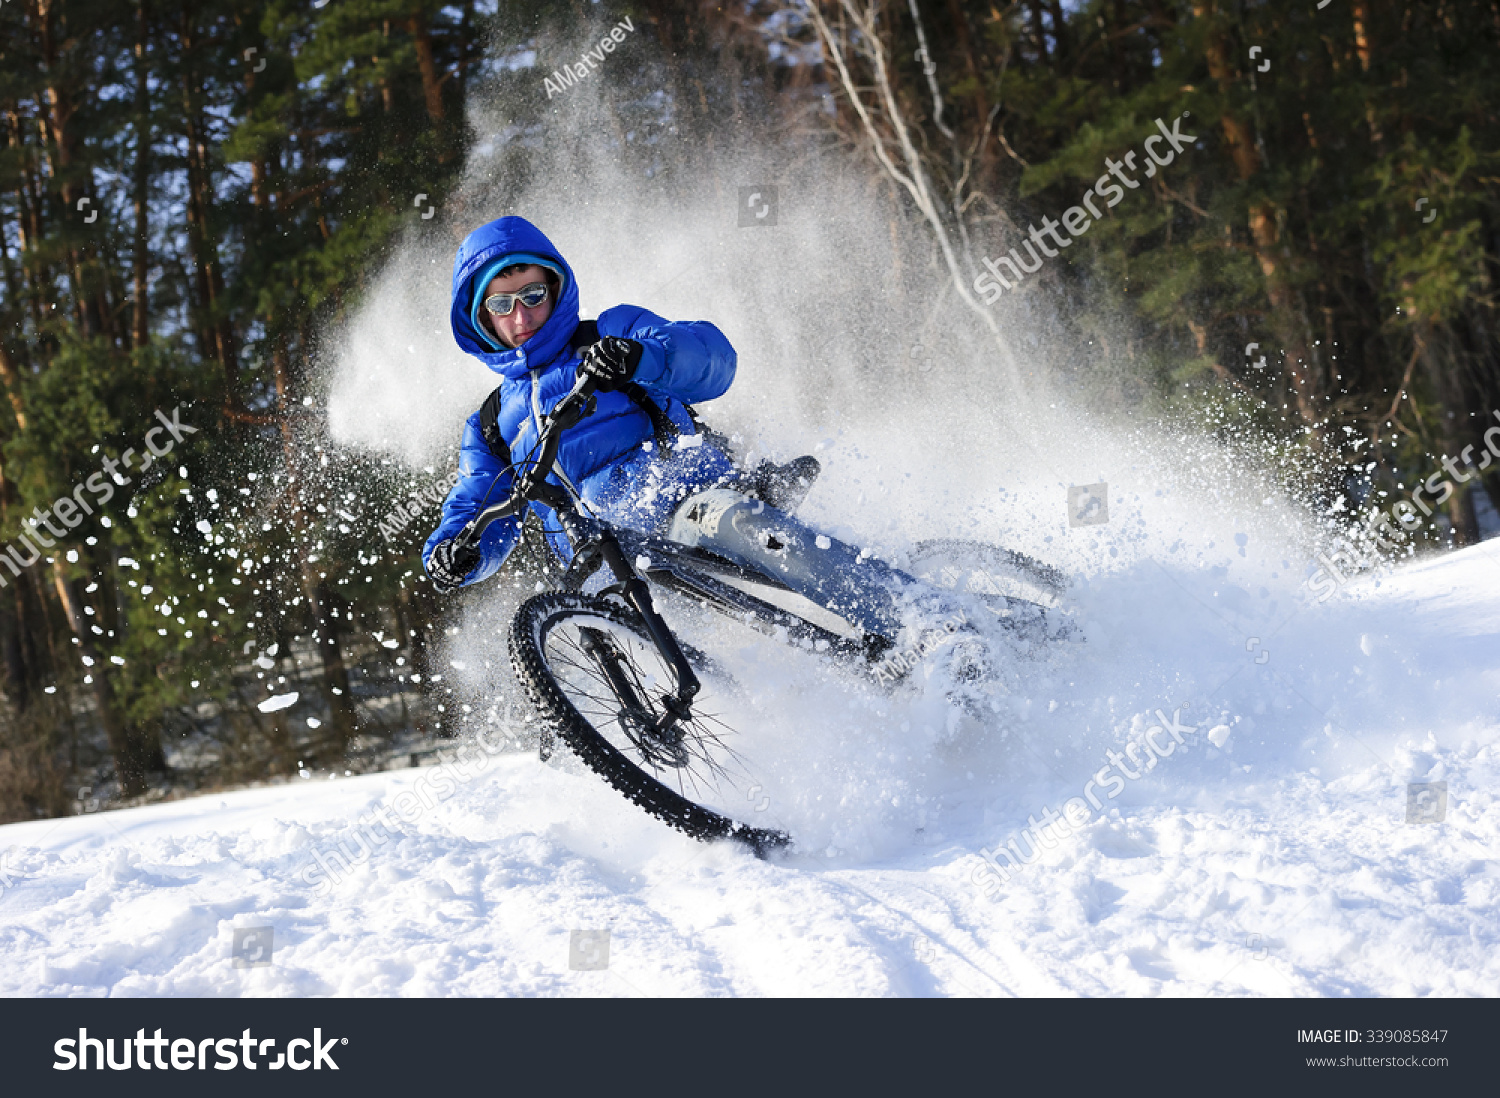 mountainbike snow winter extreme-#2